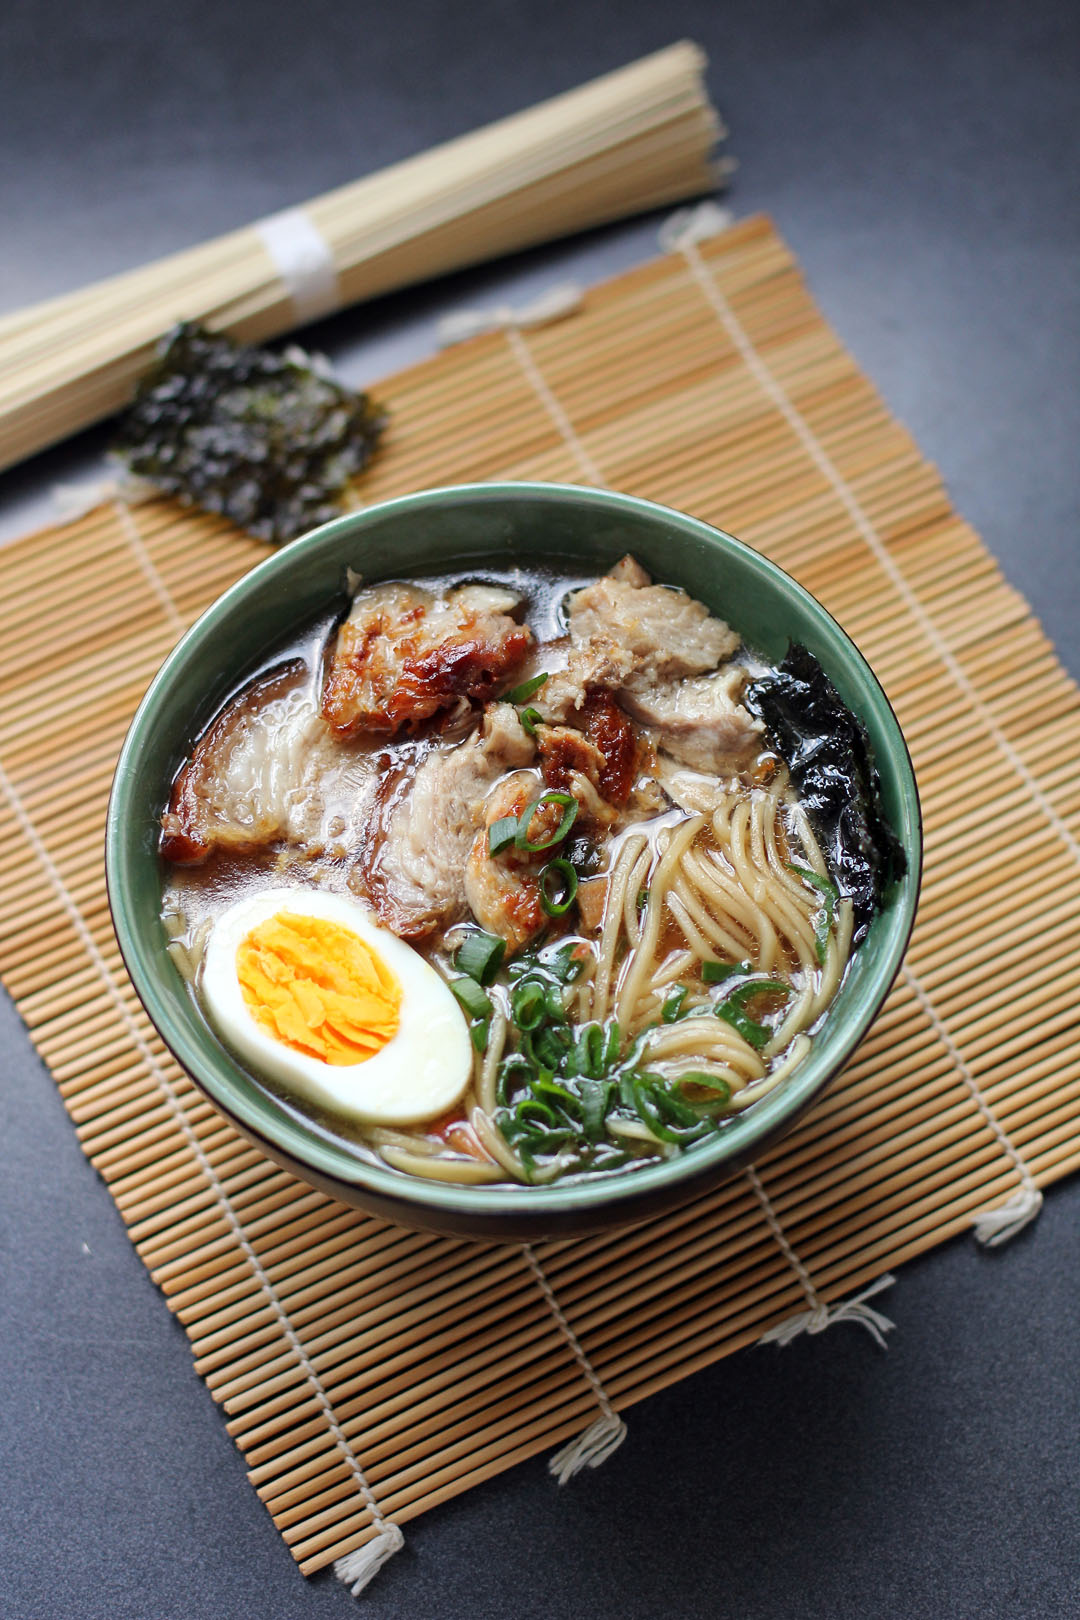 recipe ramen easy vegetable by is many its of ramen shoyu distinguished ramen of the types one